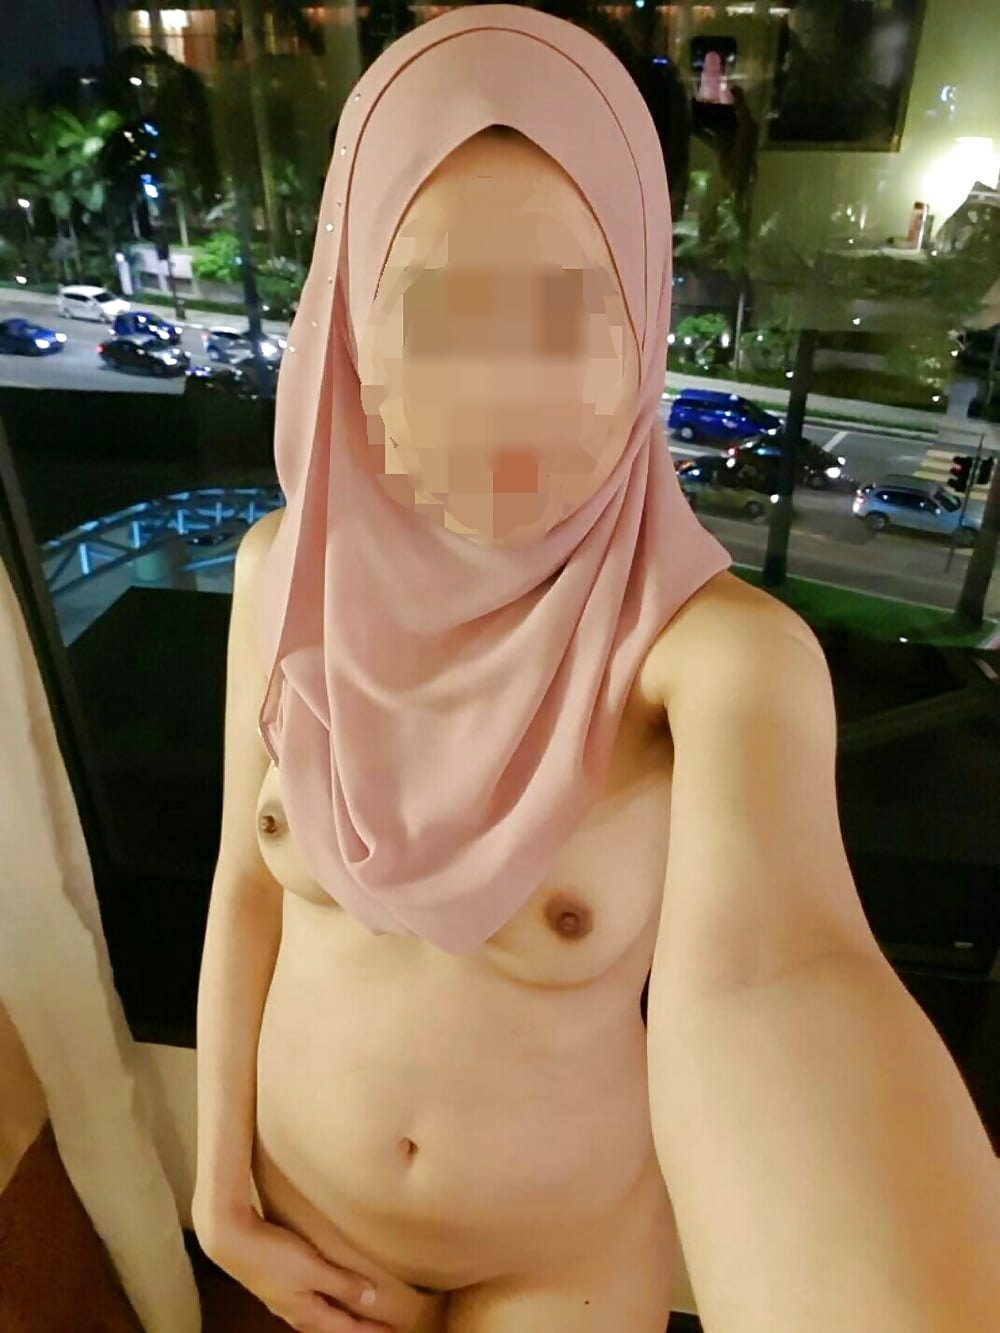 Tudung ladies naked — photo 10